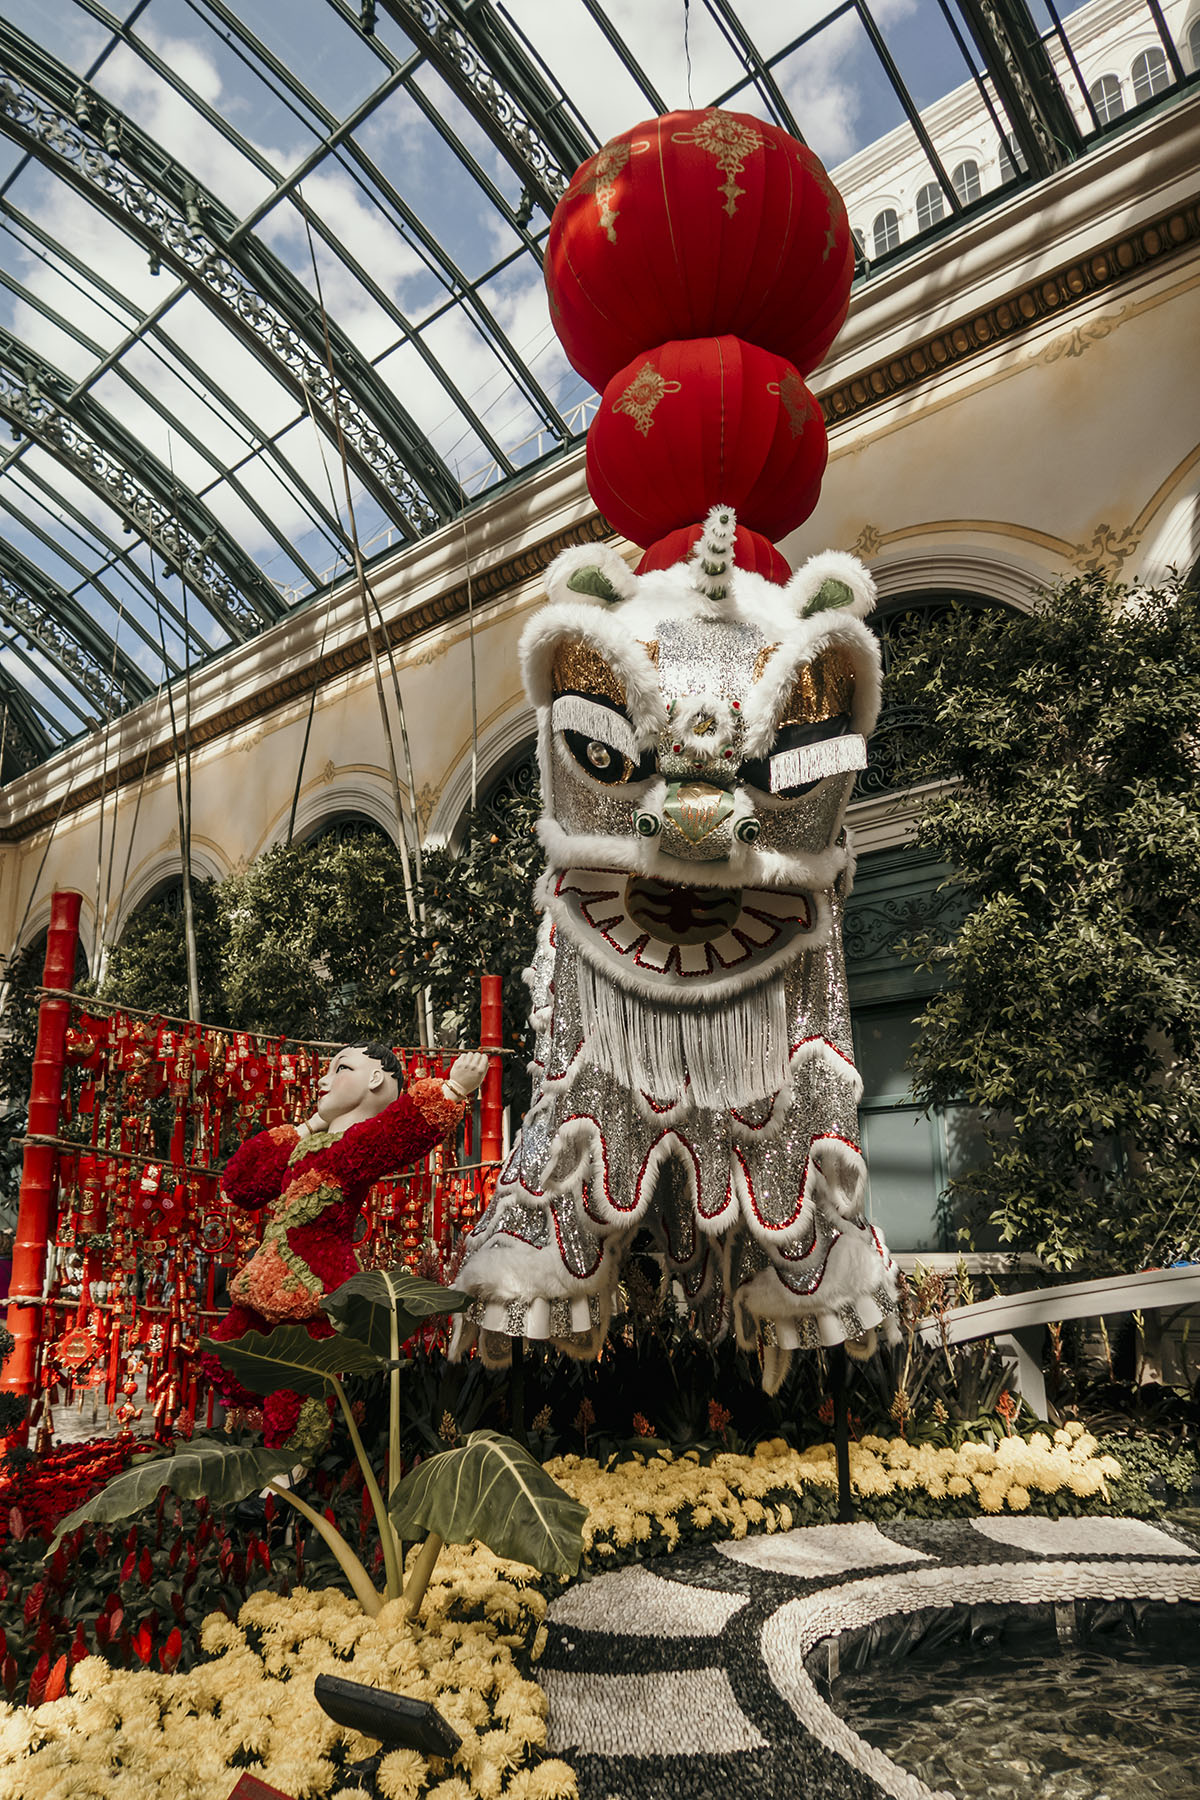 Chinese dragon decoration at the Bellagio hotel in Las Vegas during Chinese New Year's celebrations